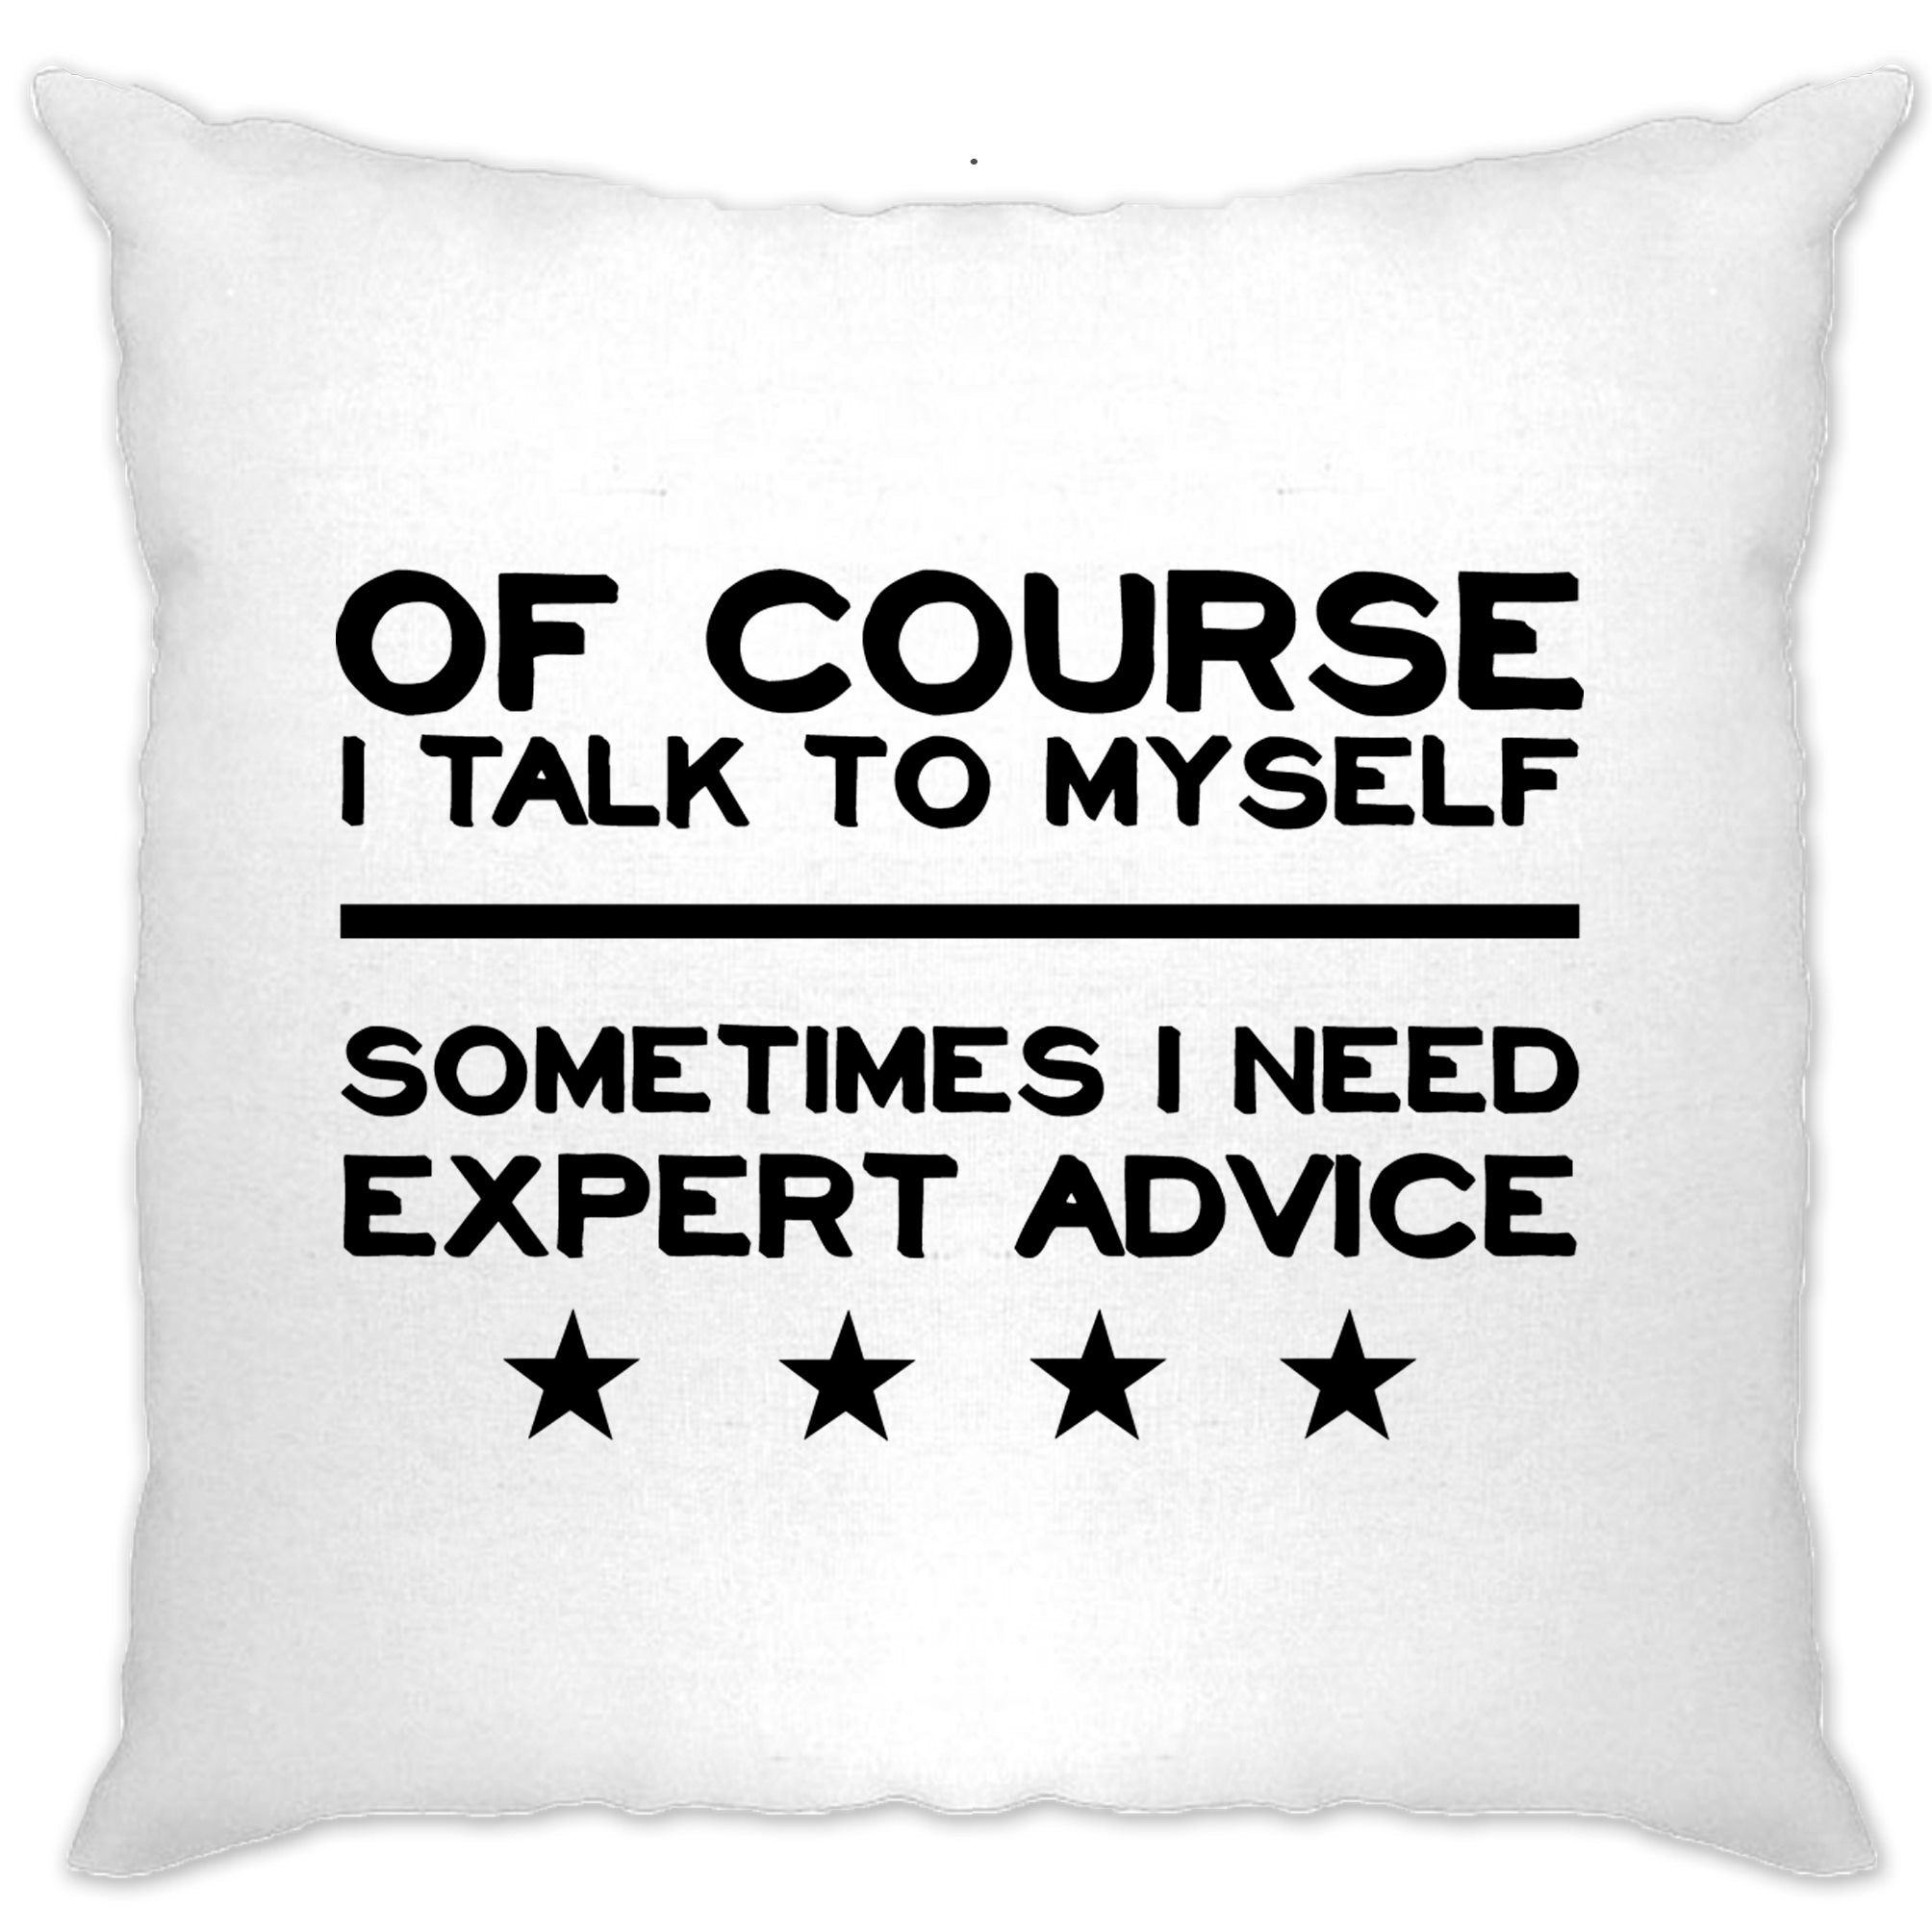 Funny Cushion Cover Of Course I Talk To Myself